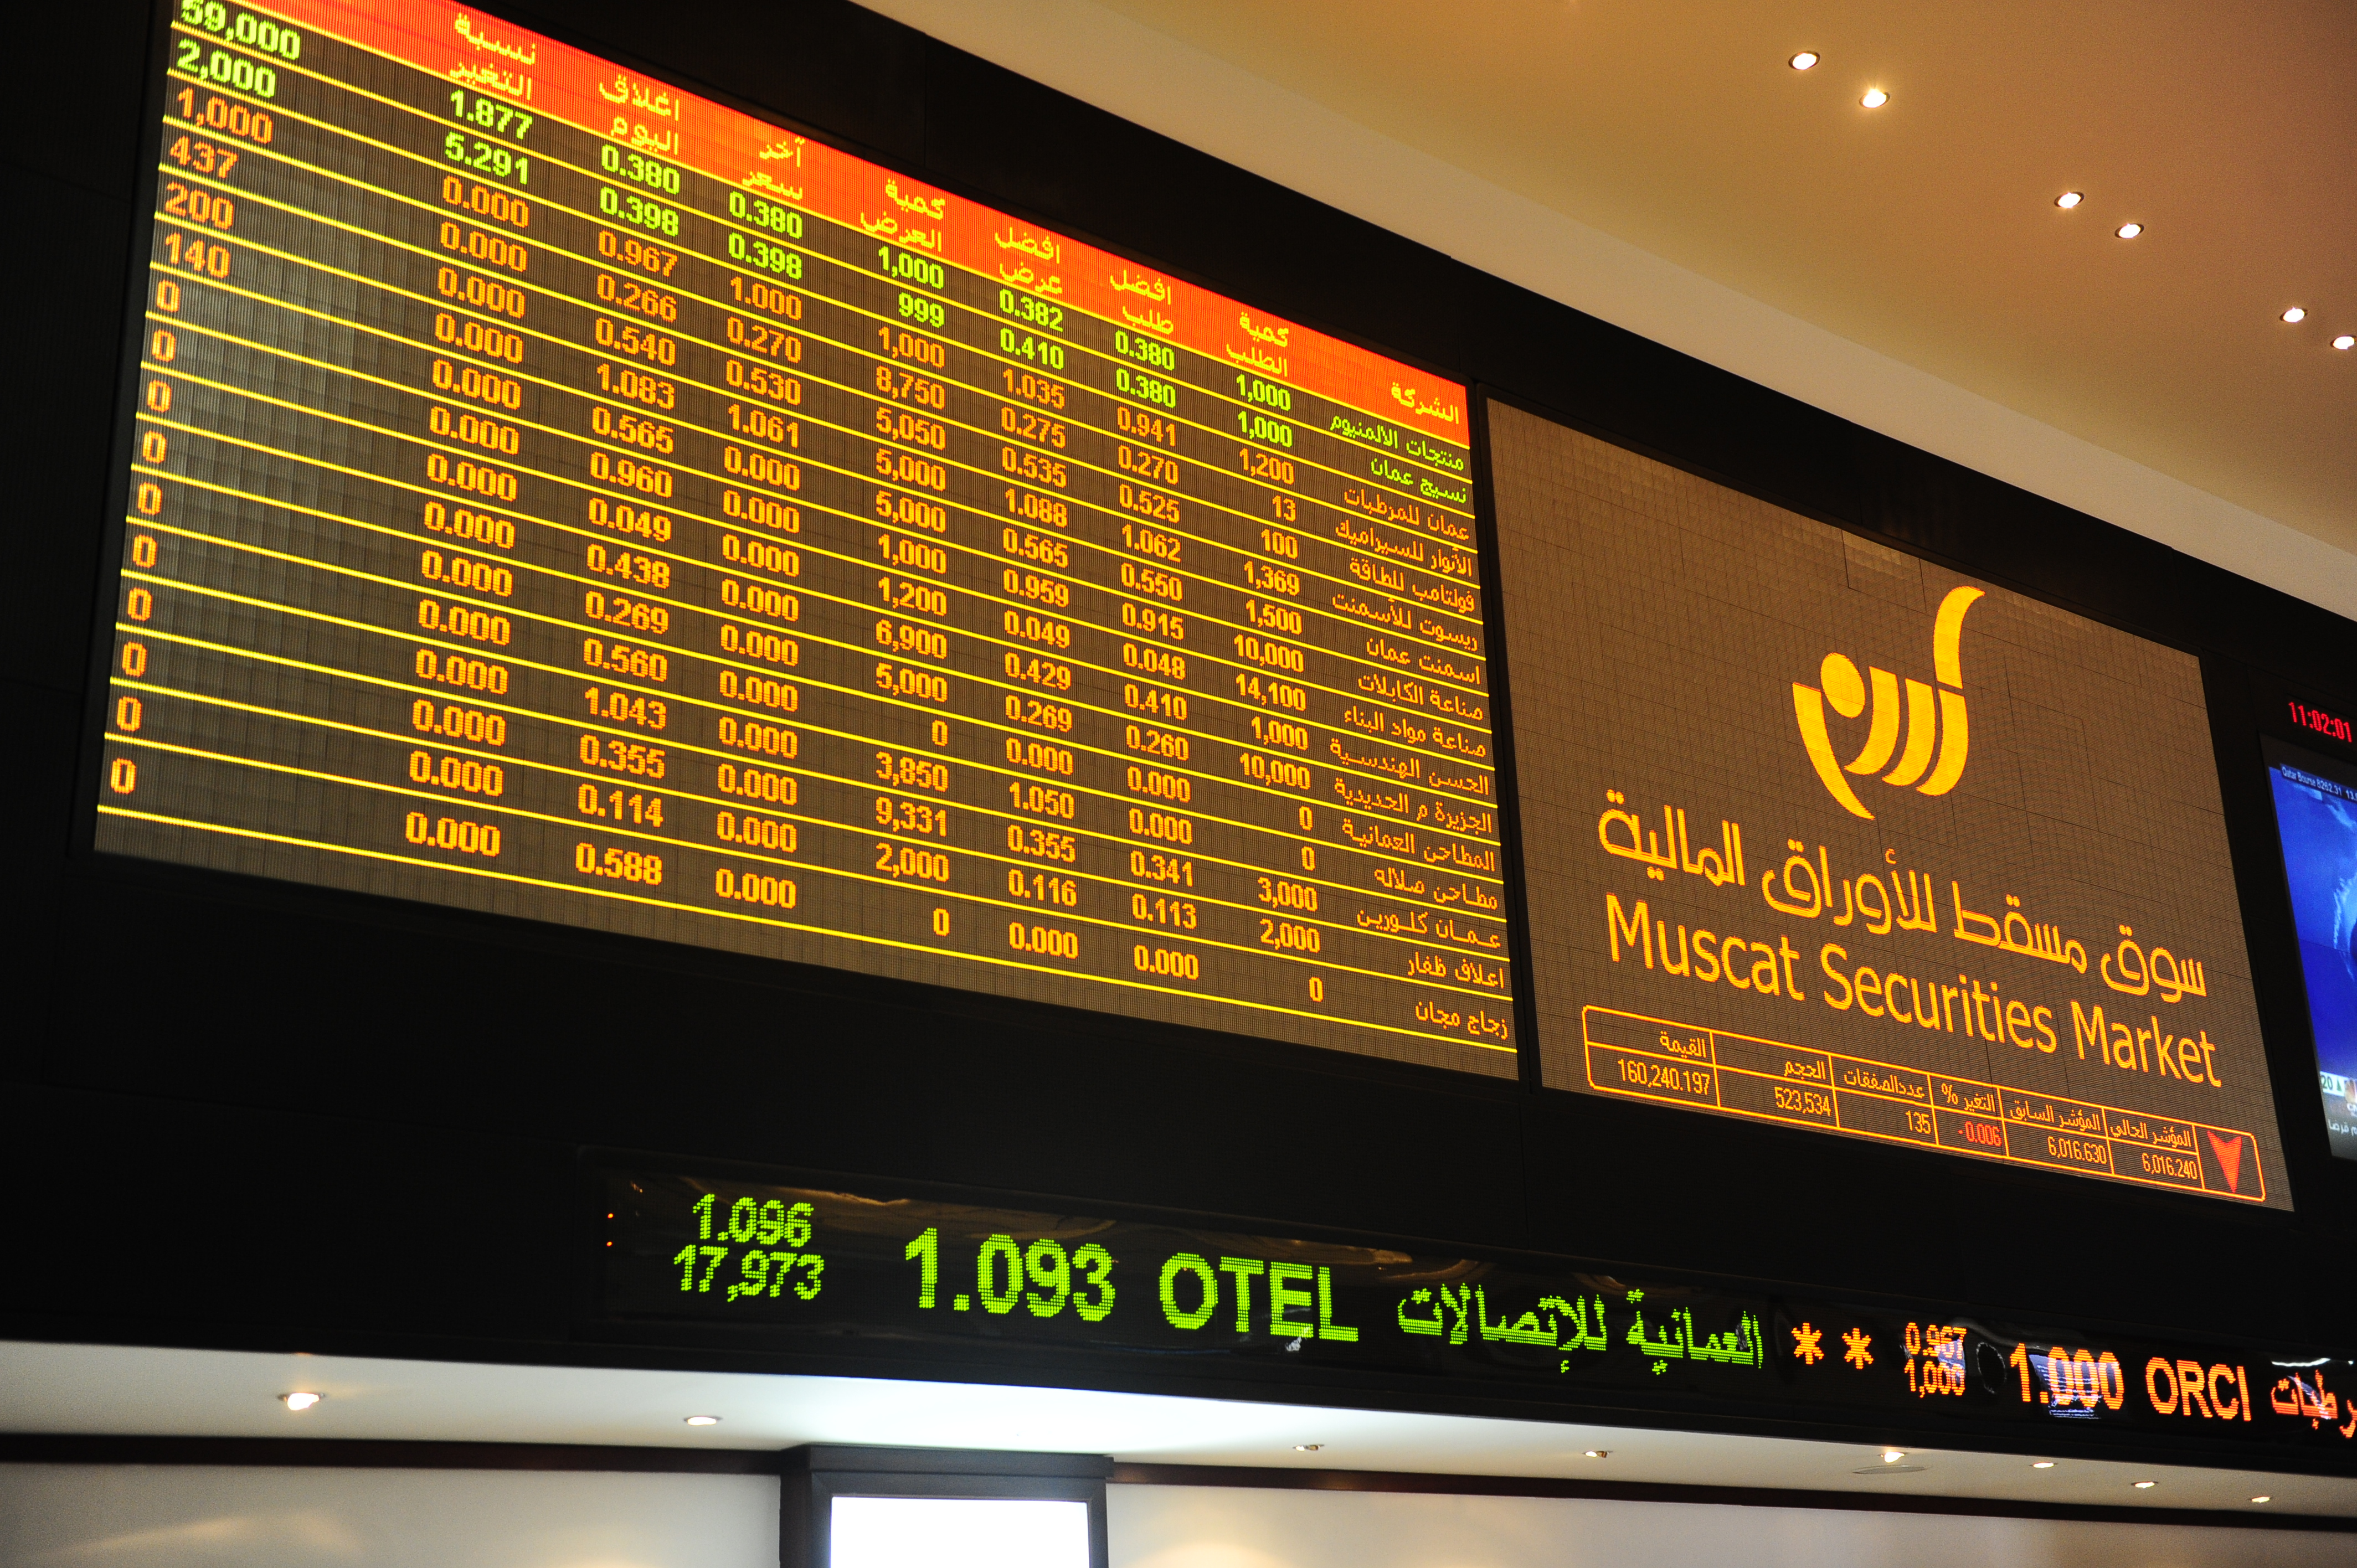 Oman's share index ends lower marginally